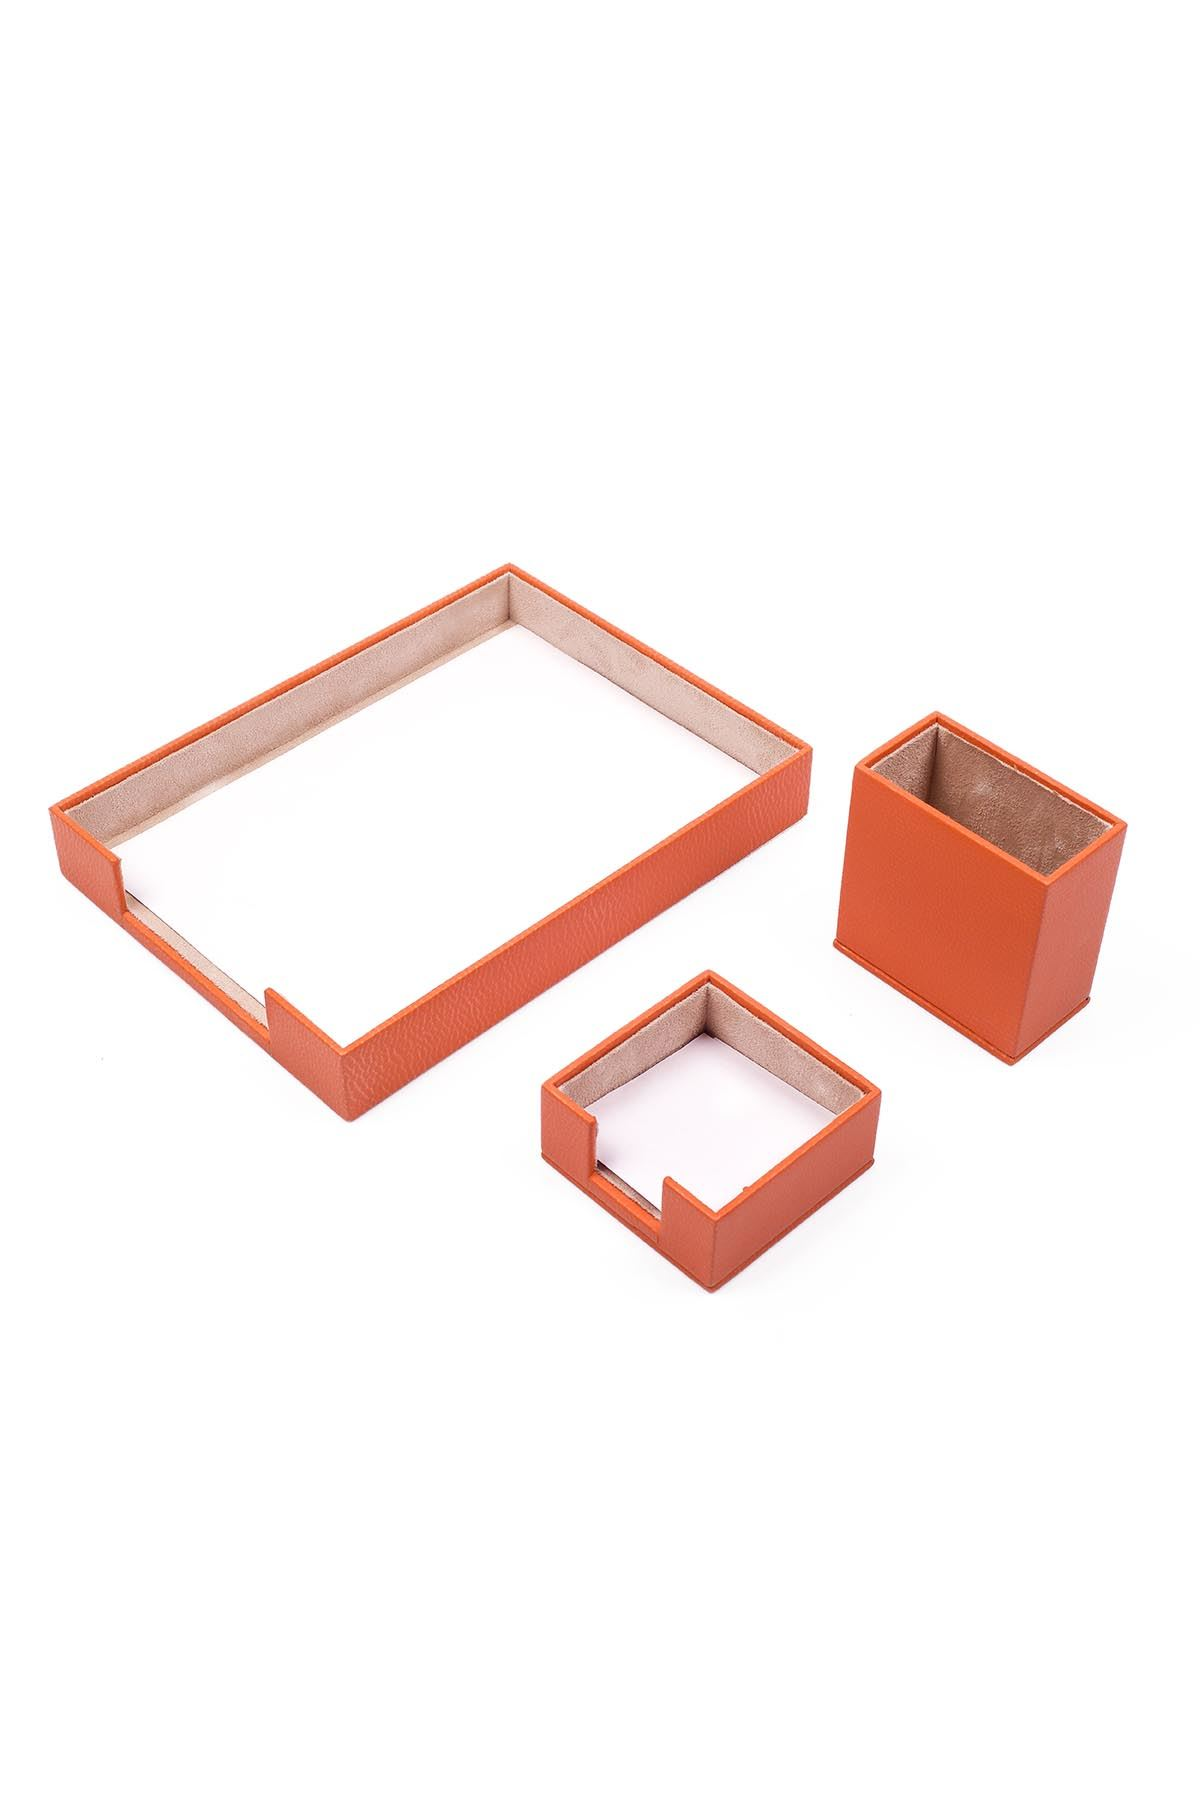 Document Tray With 2 Accessories Orange| Desk Set Accessories | Desktop Accessories | Desk Accessories | Desk Organizers